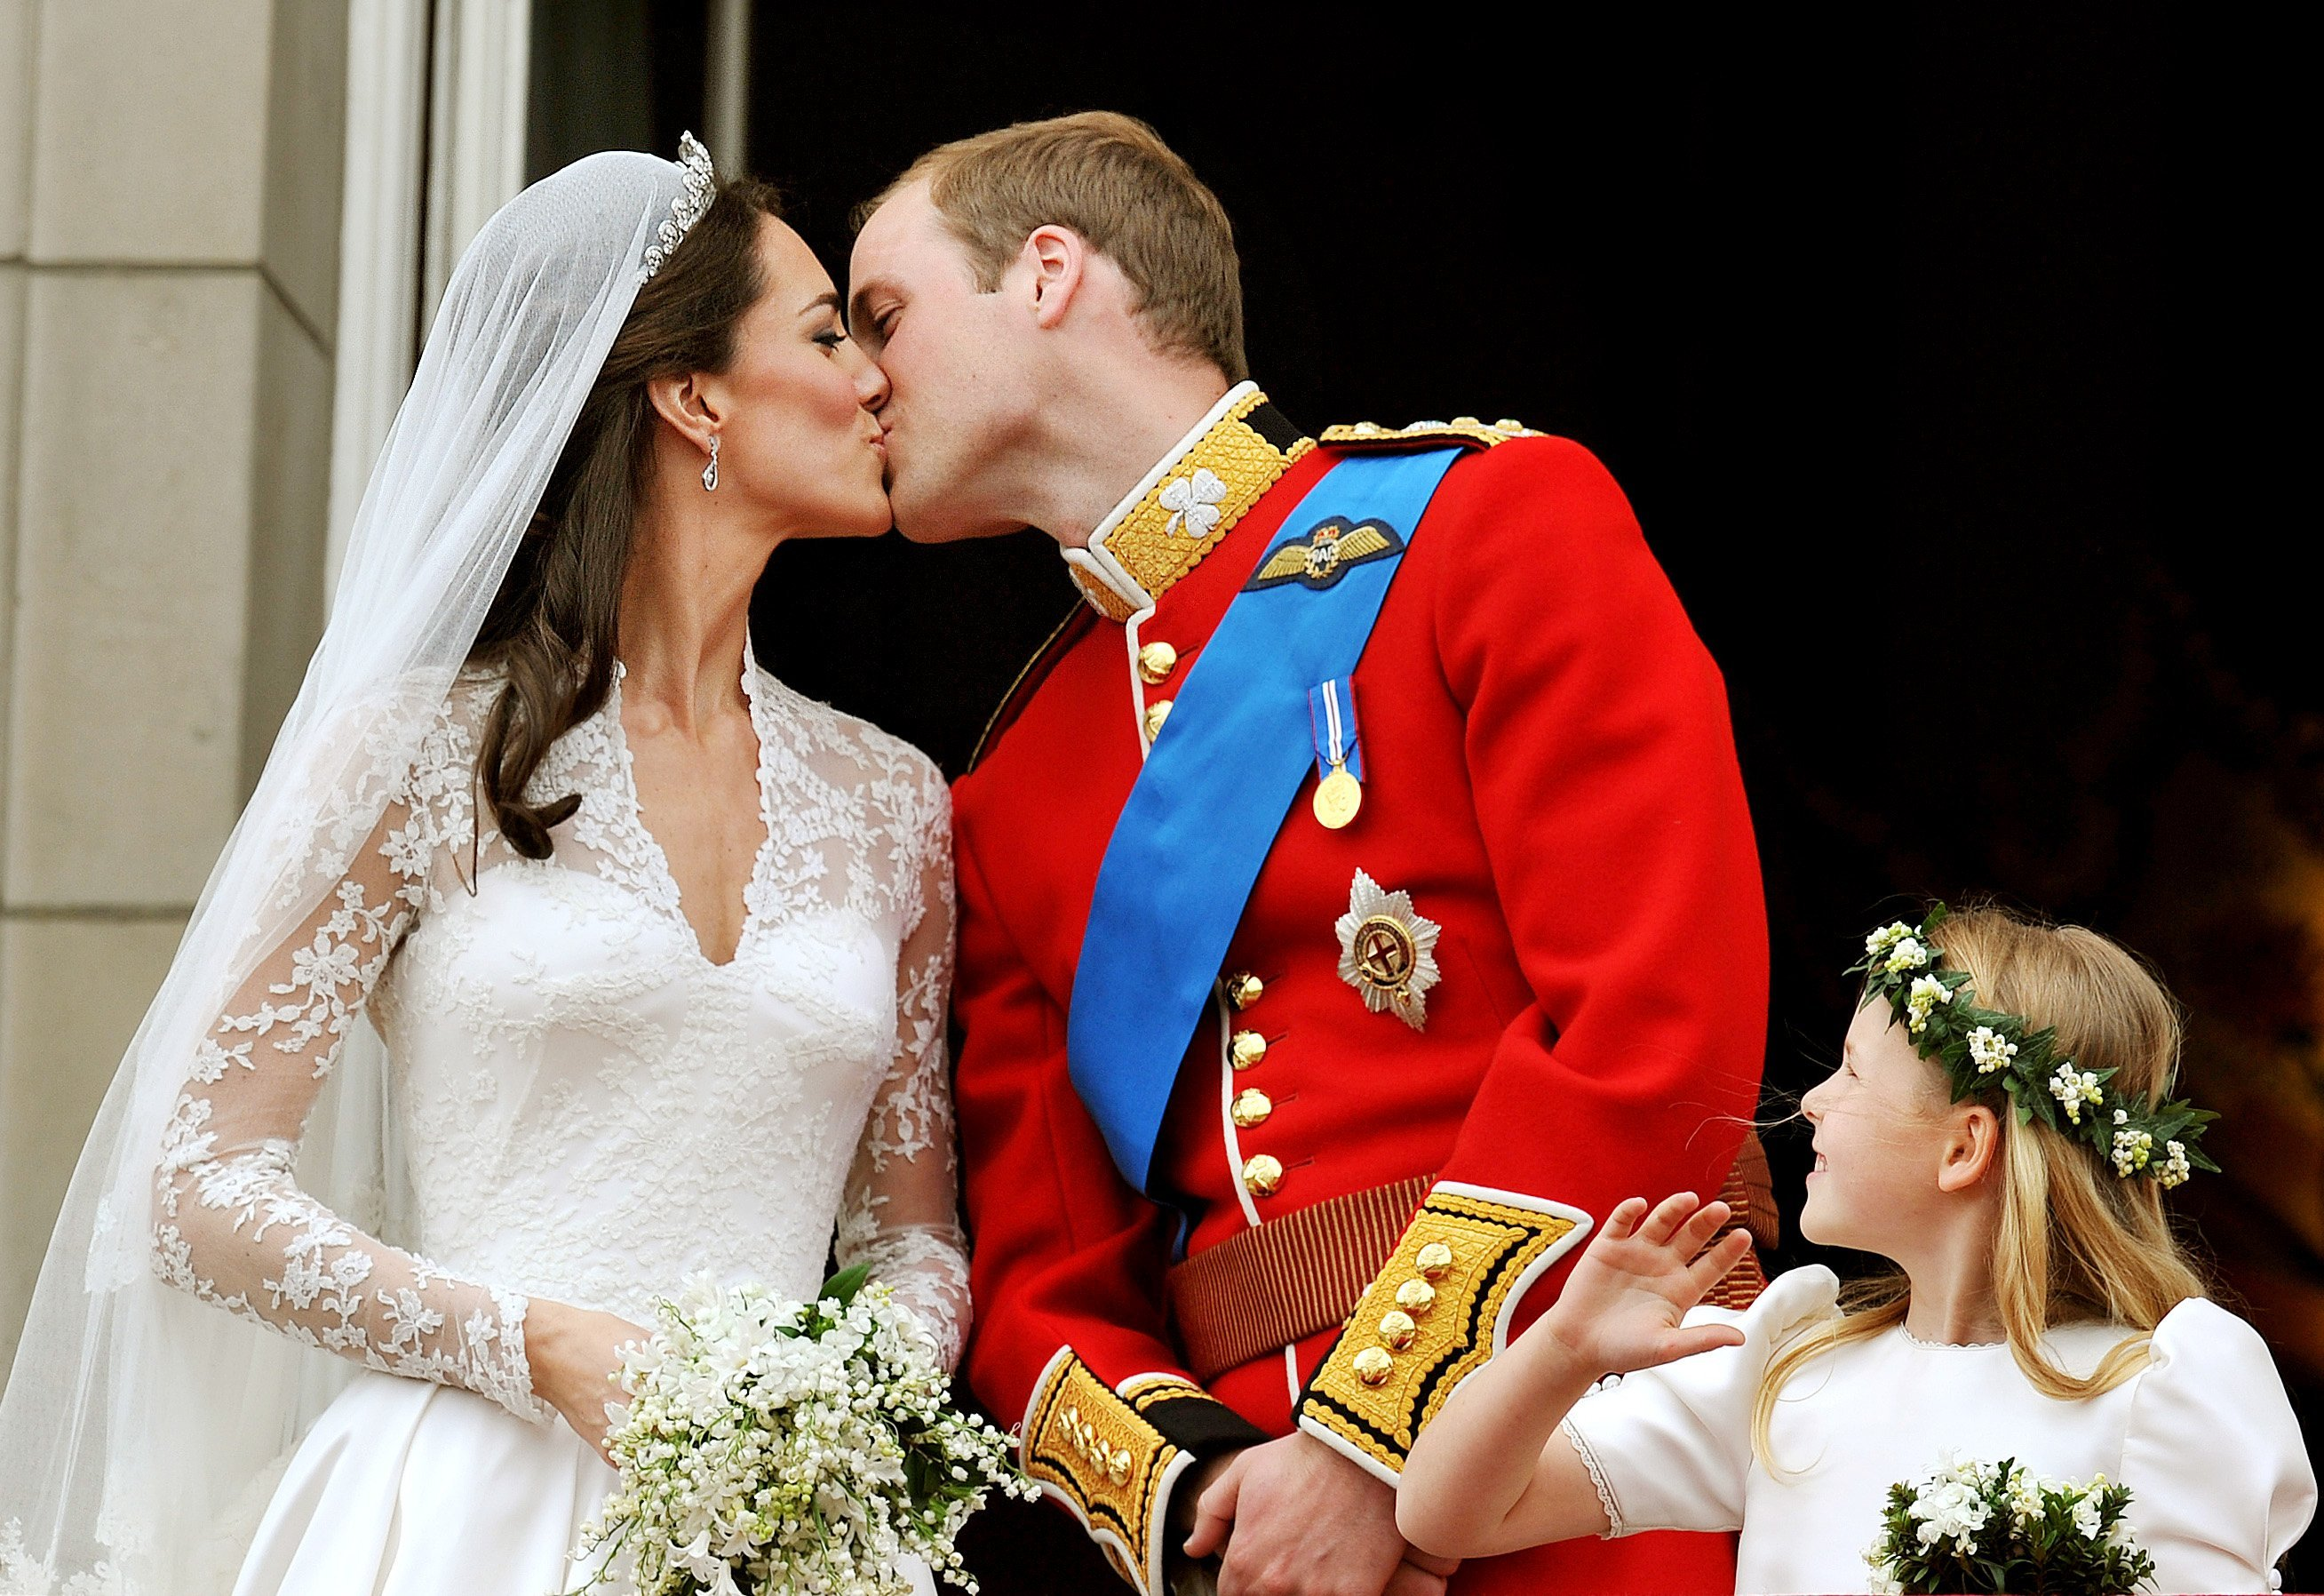 Prince William and Kate Middlleton kiss on the balcony of Buckingham Palace after getting married on April 29, 2011. | Photo: GettyImages